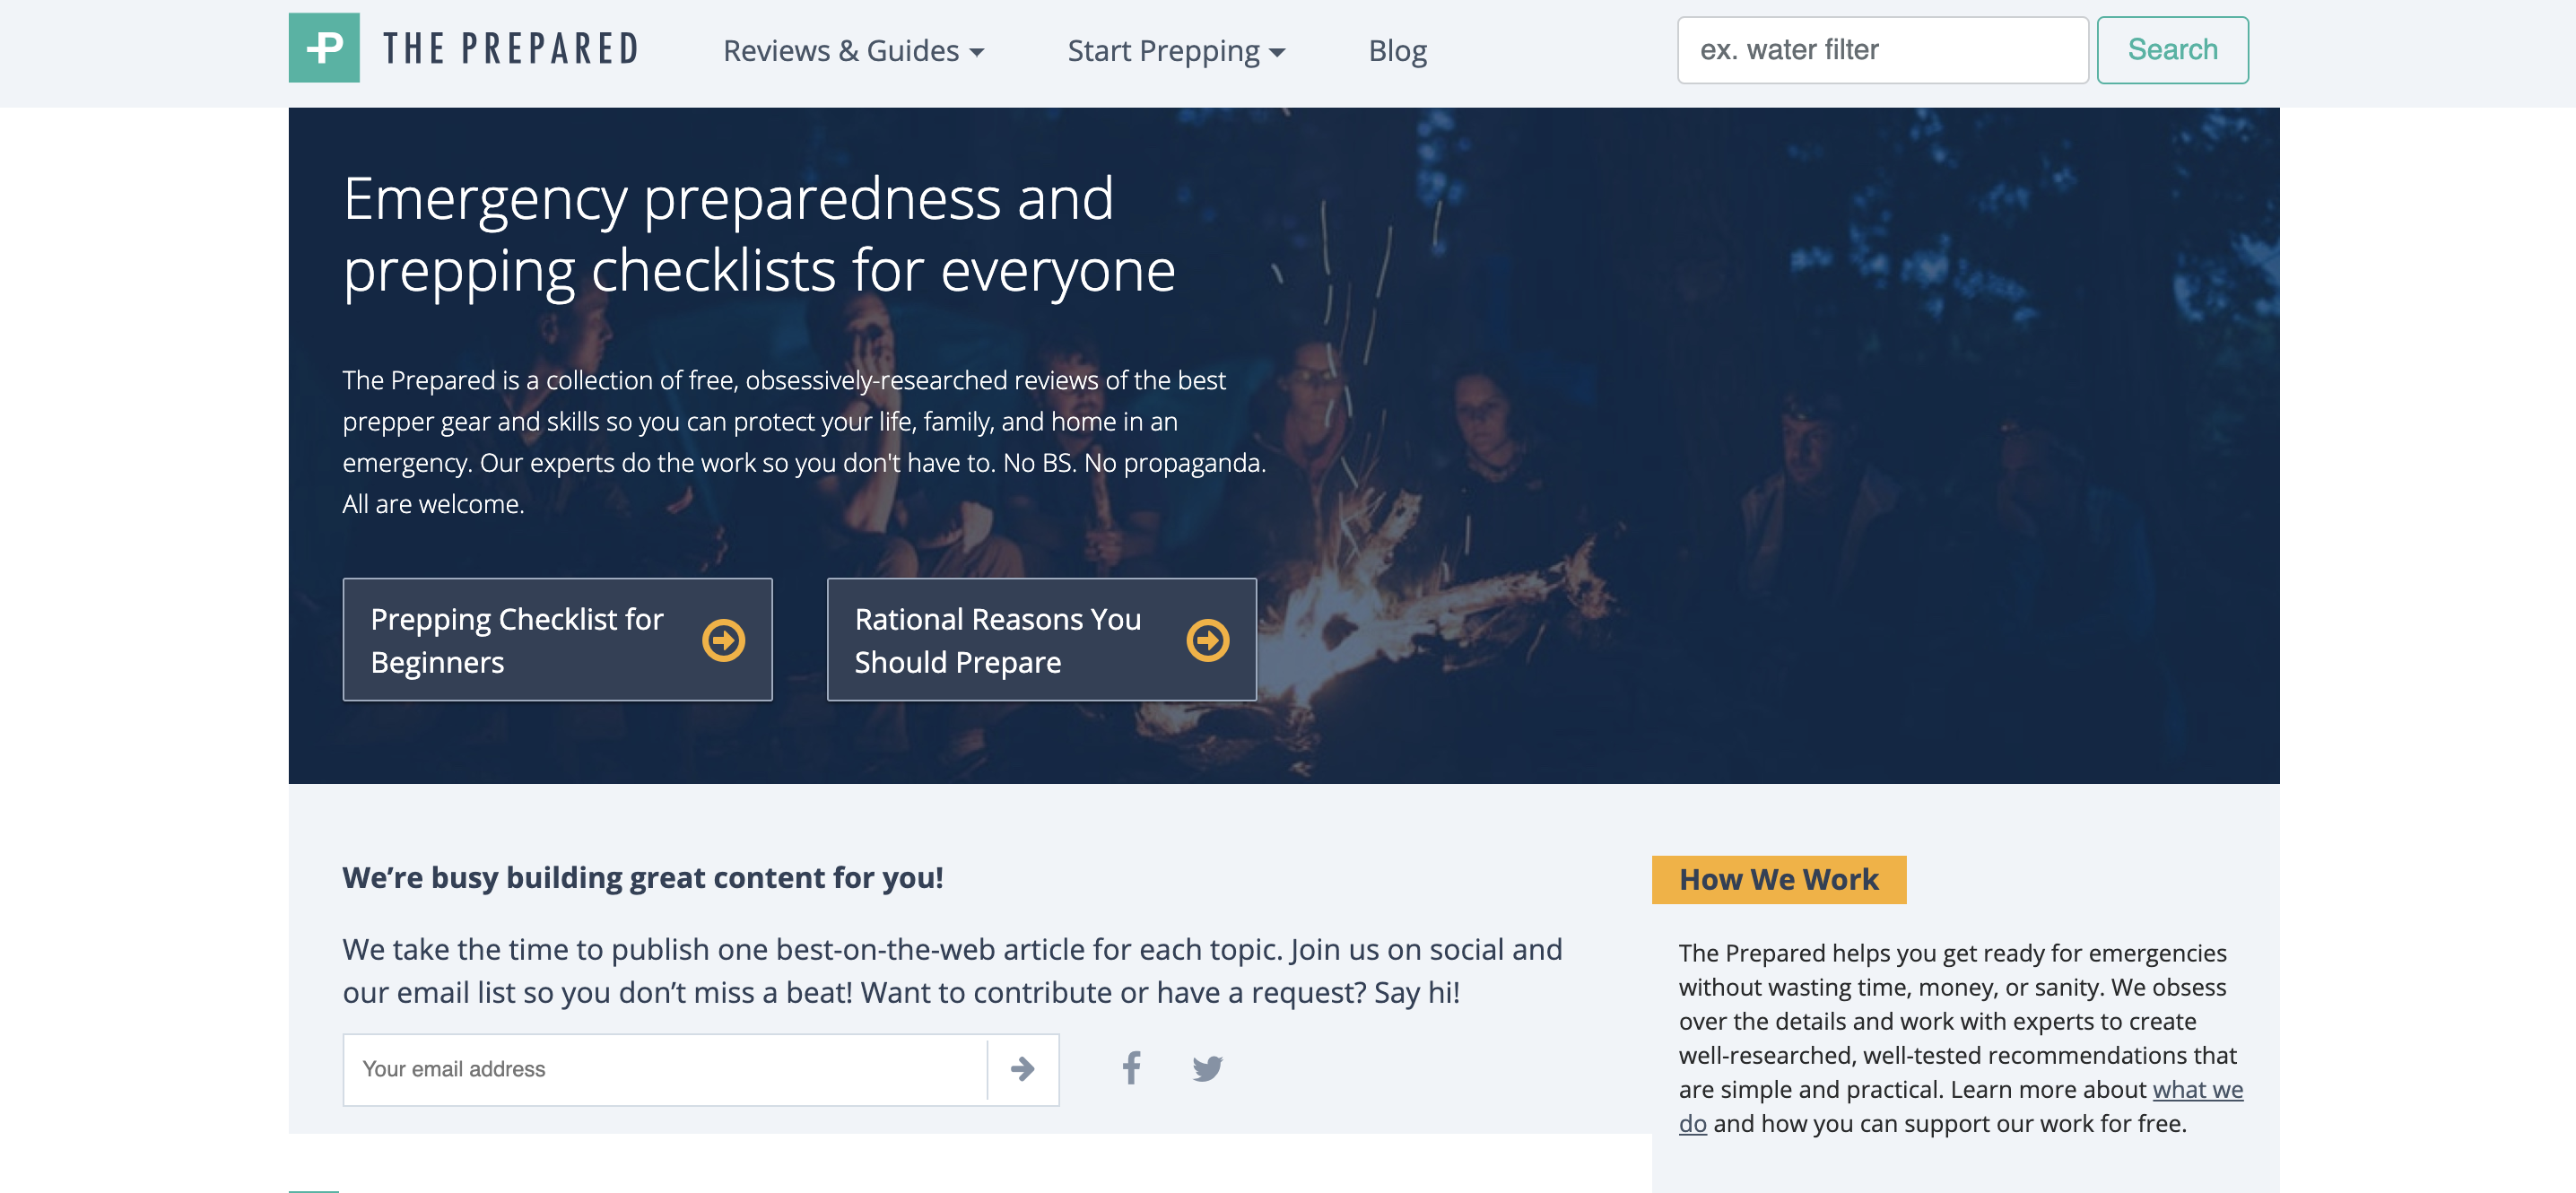 Meet 'The Prepared,' the media company pitching disaster preparedness for everyone